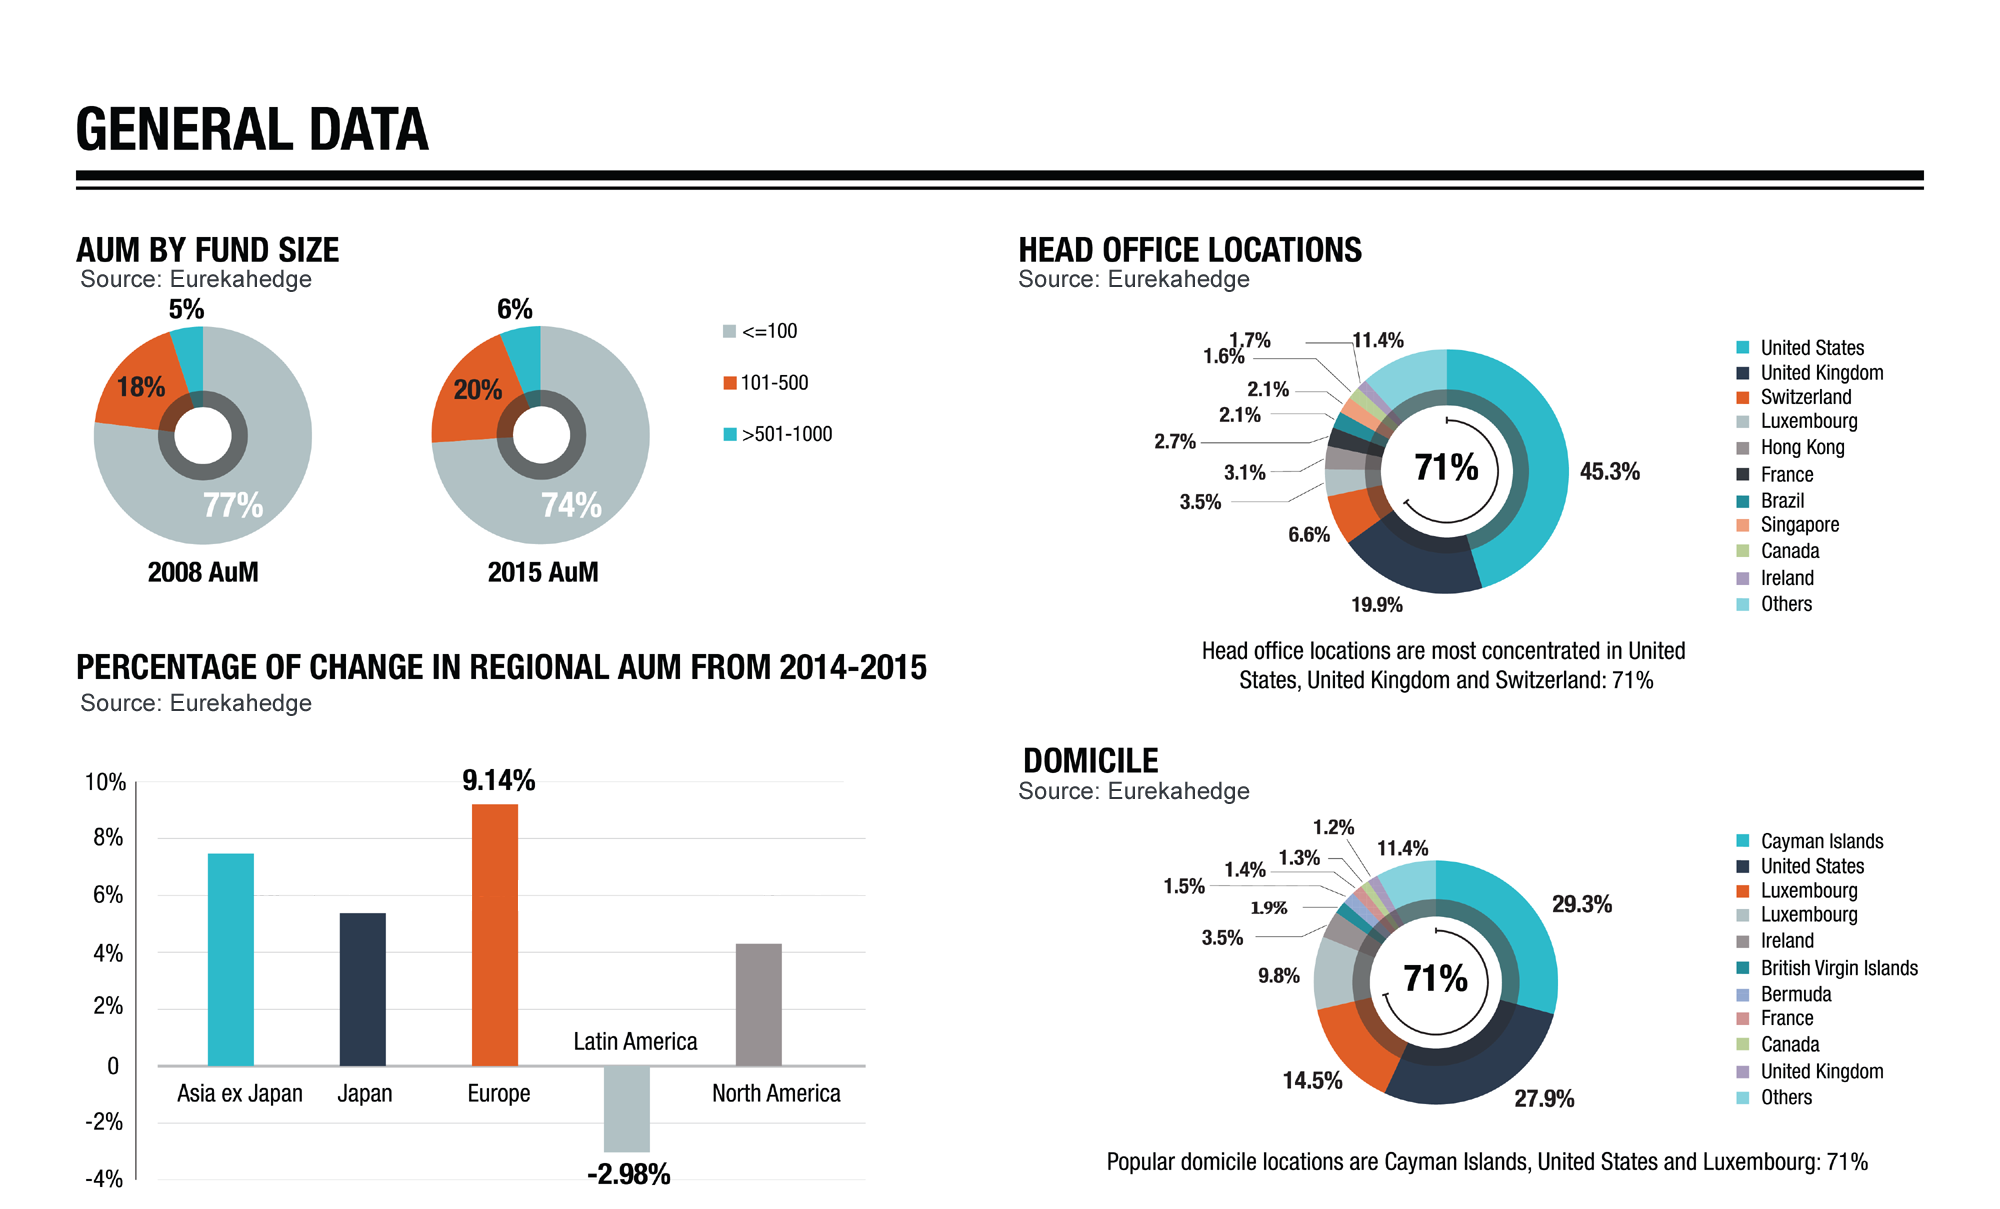 Hedge Funds 2015 Overview Infographic - Hedge fund AUM, head office location, domiciles and fees